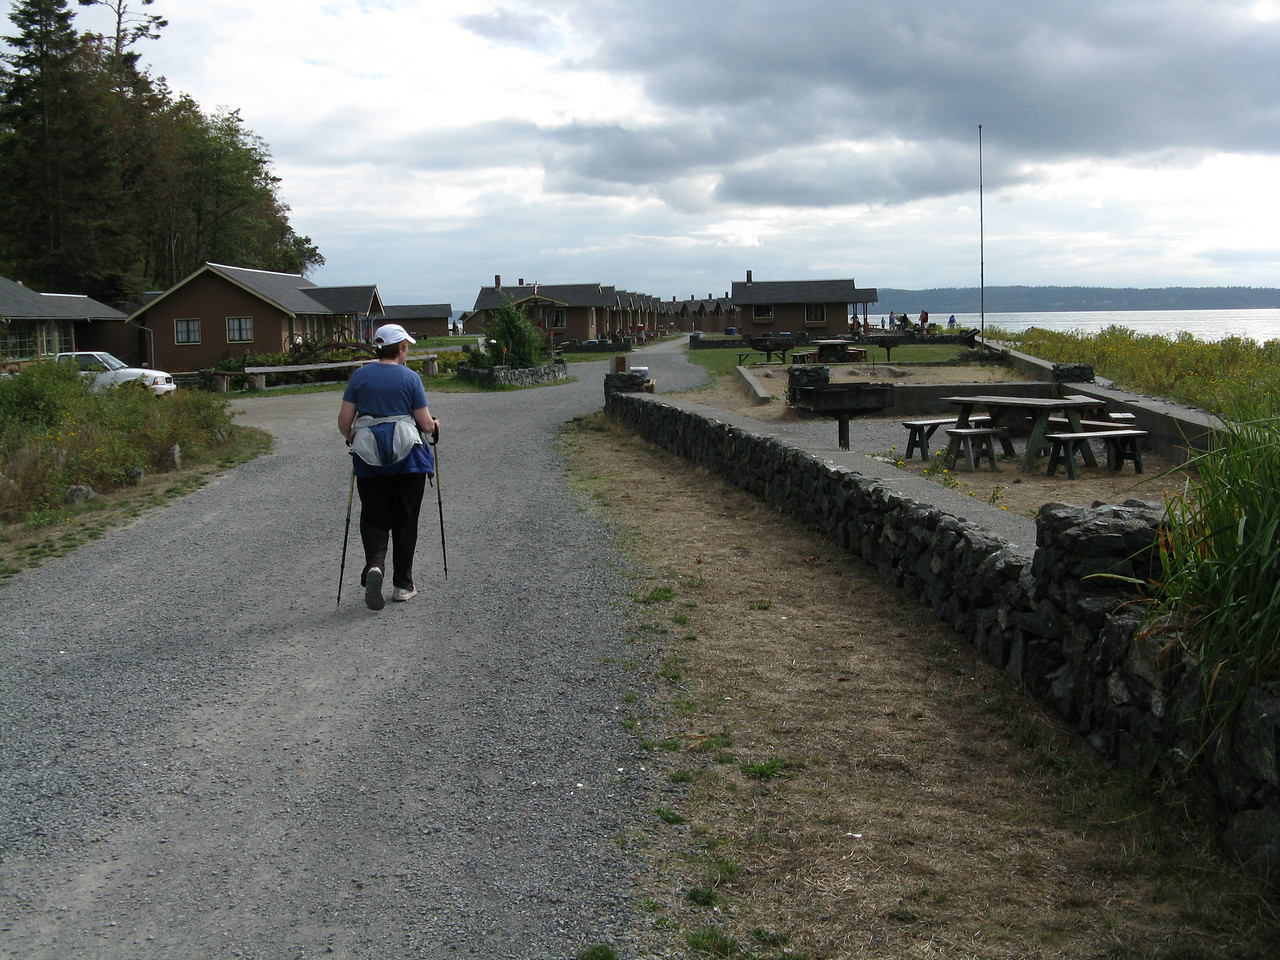 Mary is walking towards the smaller cabins at the beach.